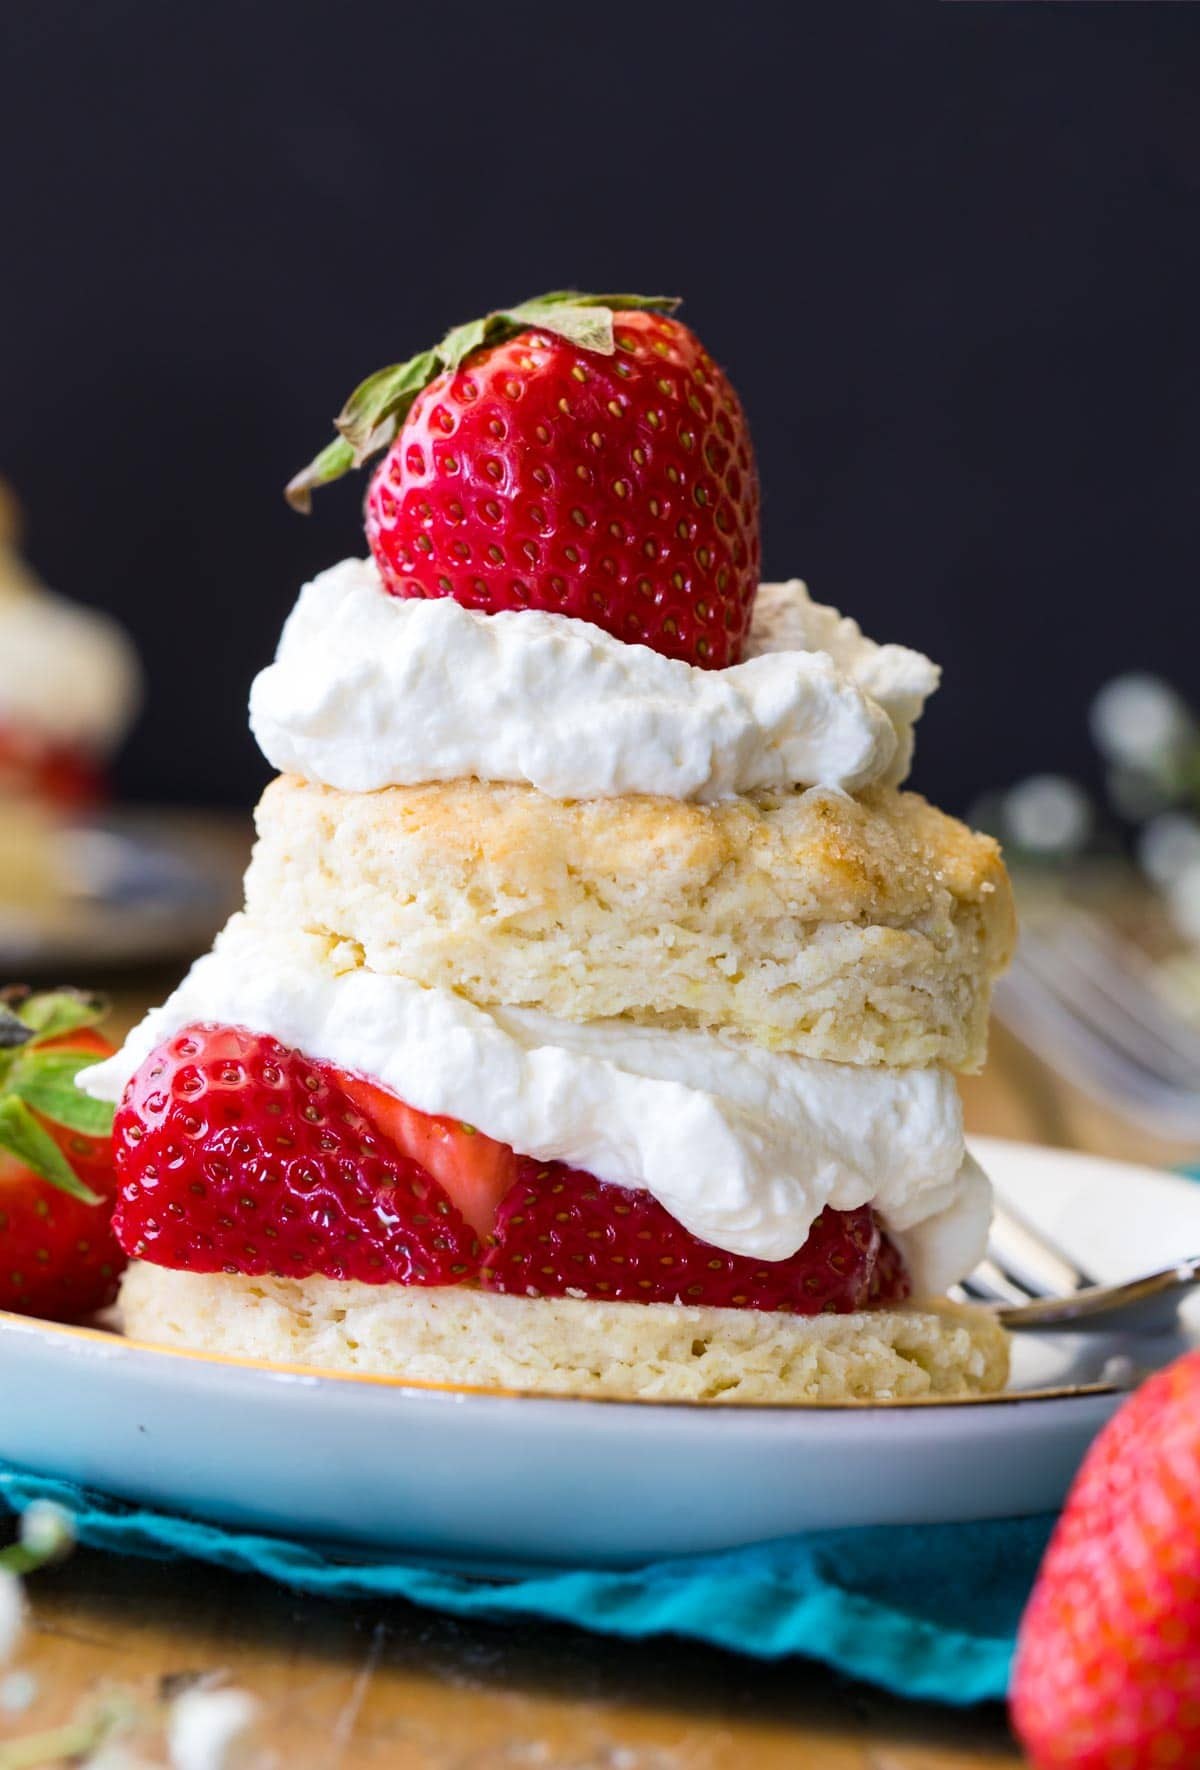 Strawberry shortcake on a white plate.